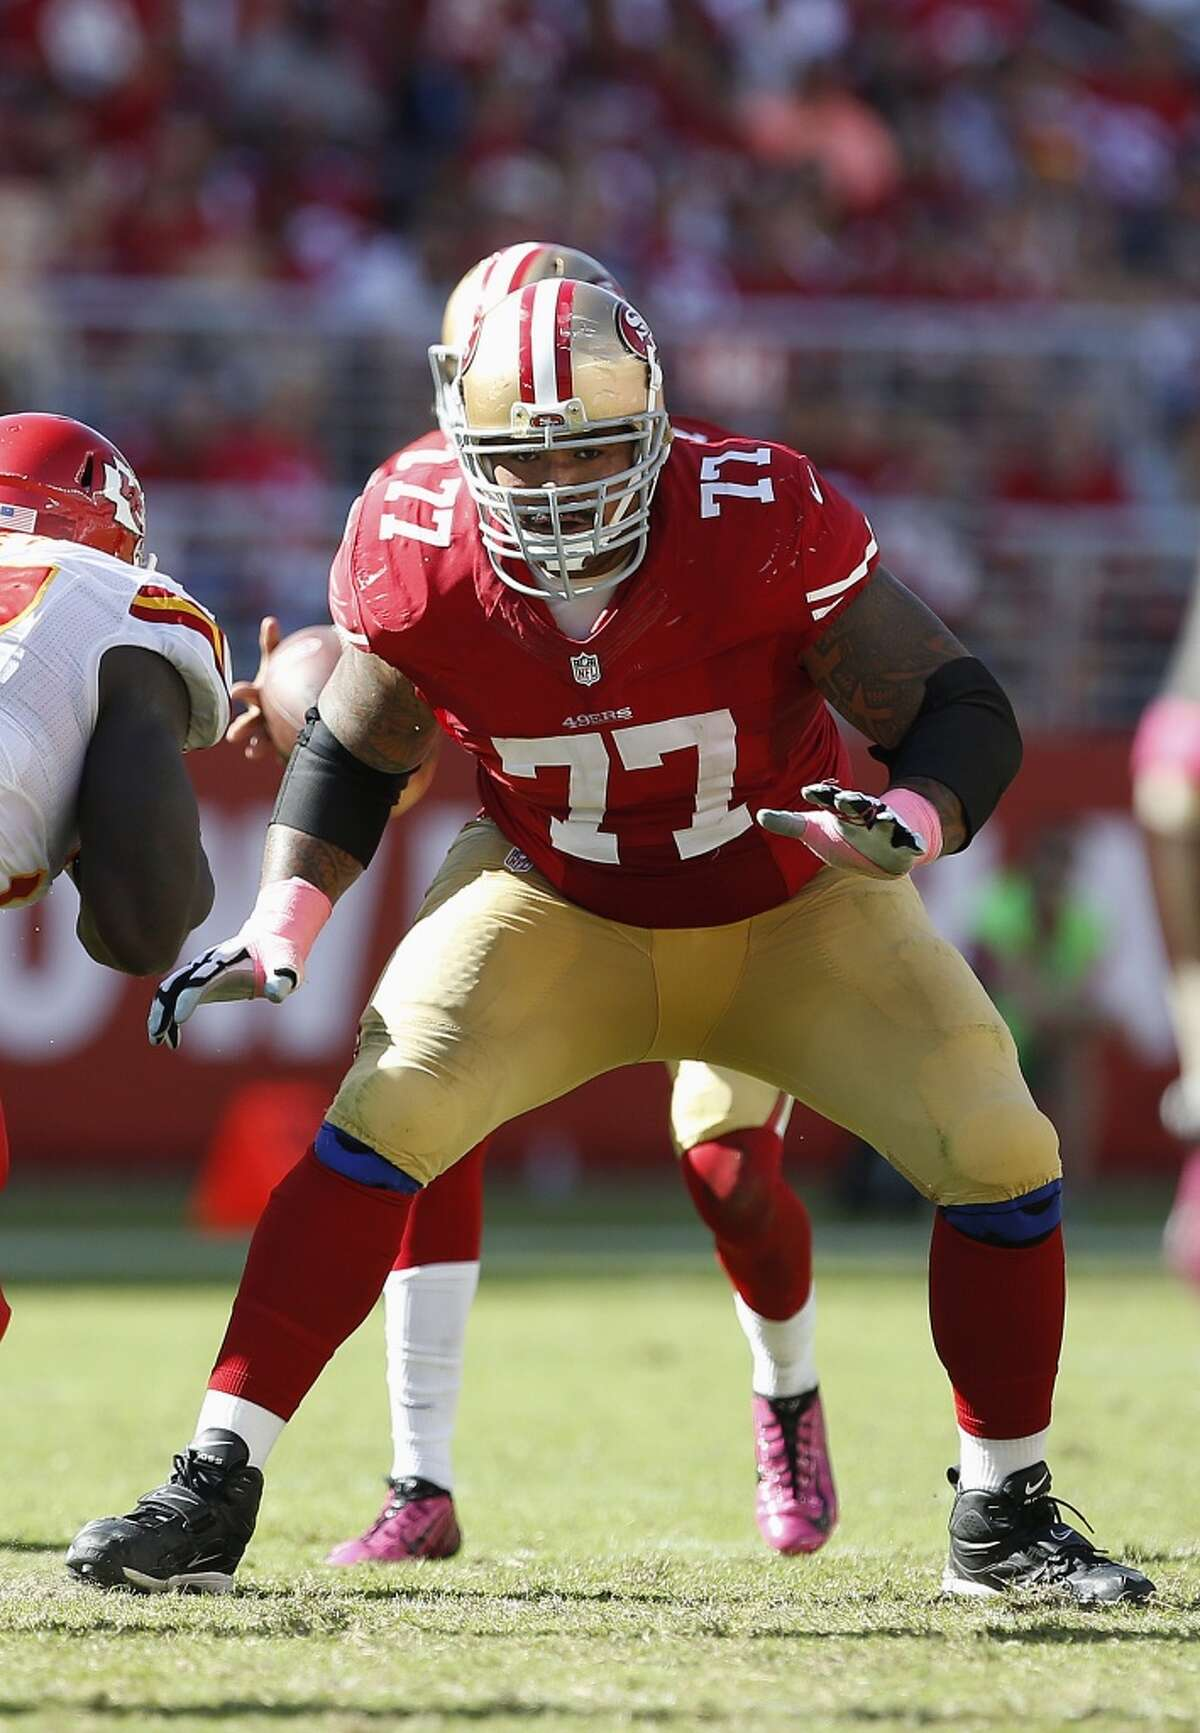 G Mike Iupati - San Francisco to Arizona: Iupati sustained a scary neck injury but only missed a game. He played his regular power game with no discernible dip in production after signing a deal with $22.5 million guaranteed.